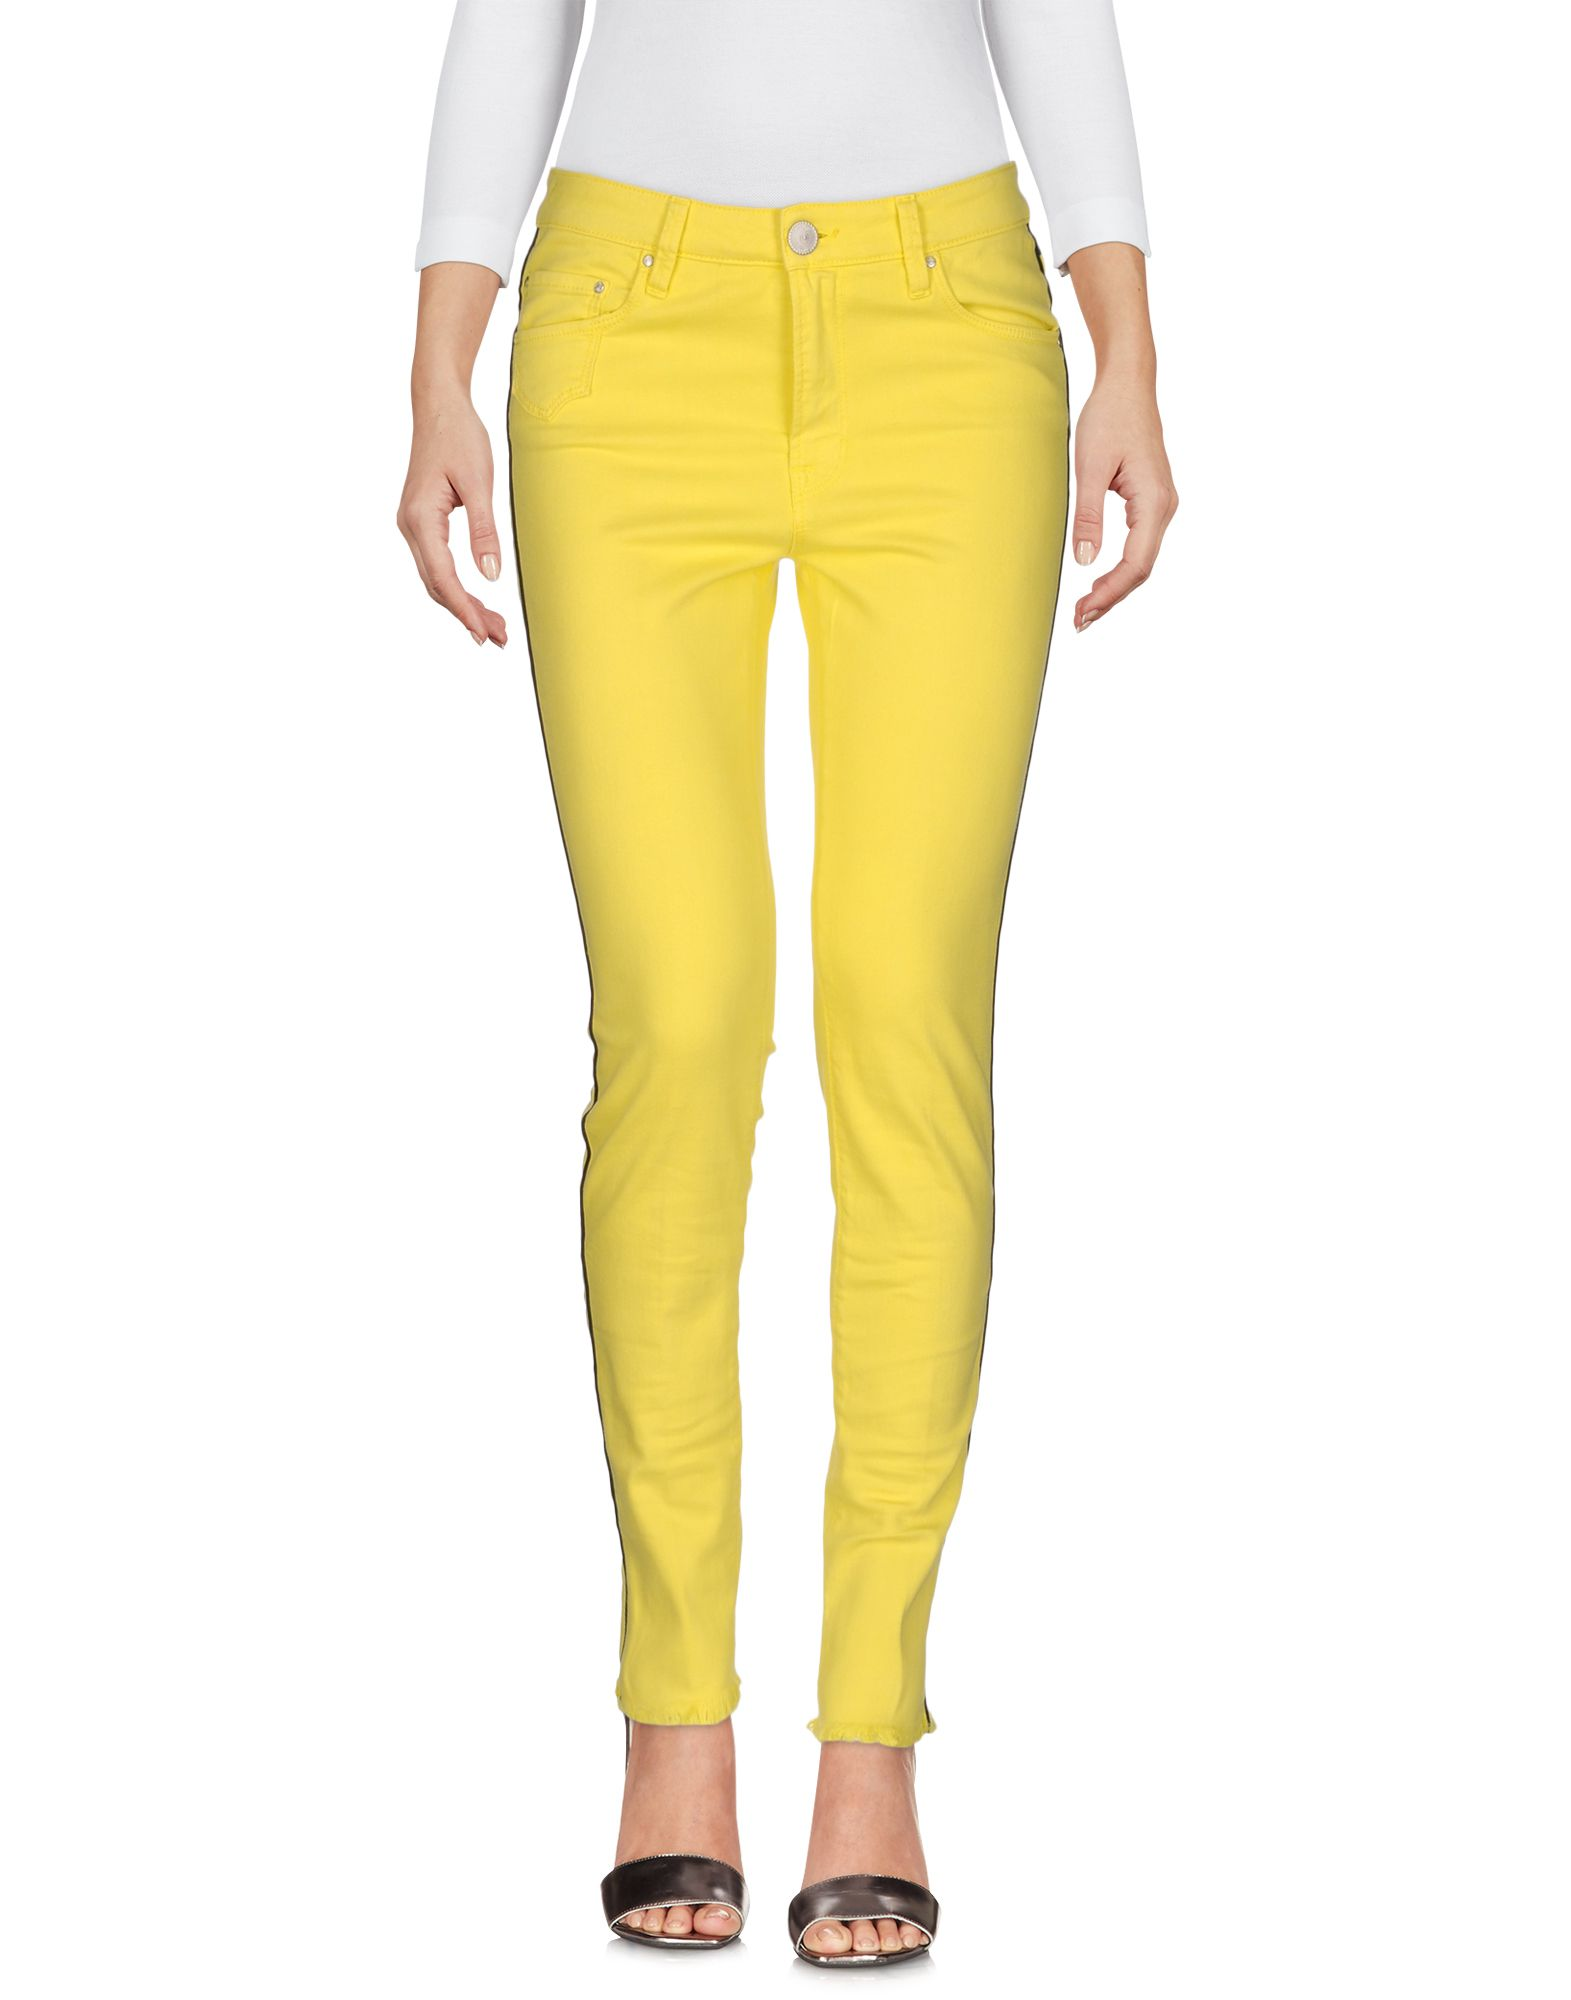 DONT CRY Denim Pants in Yellow